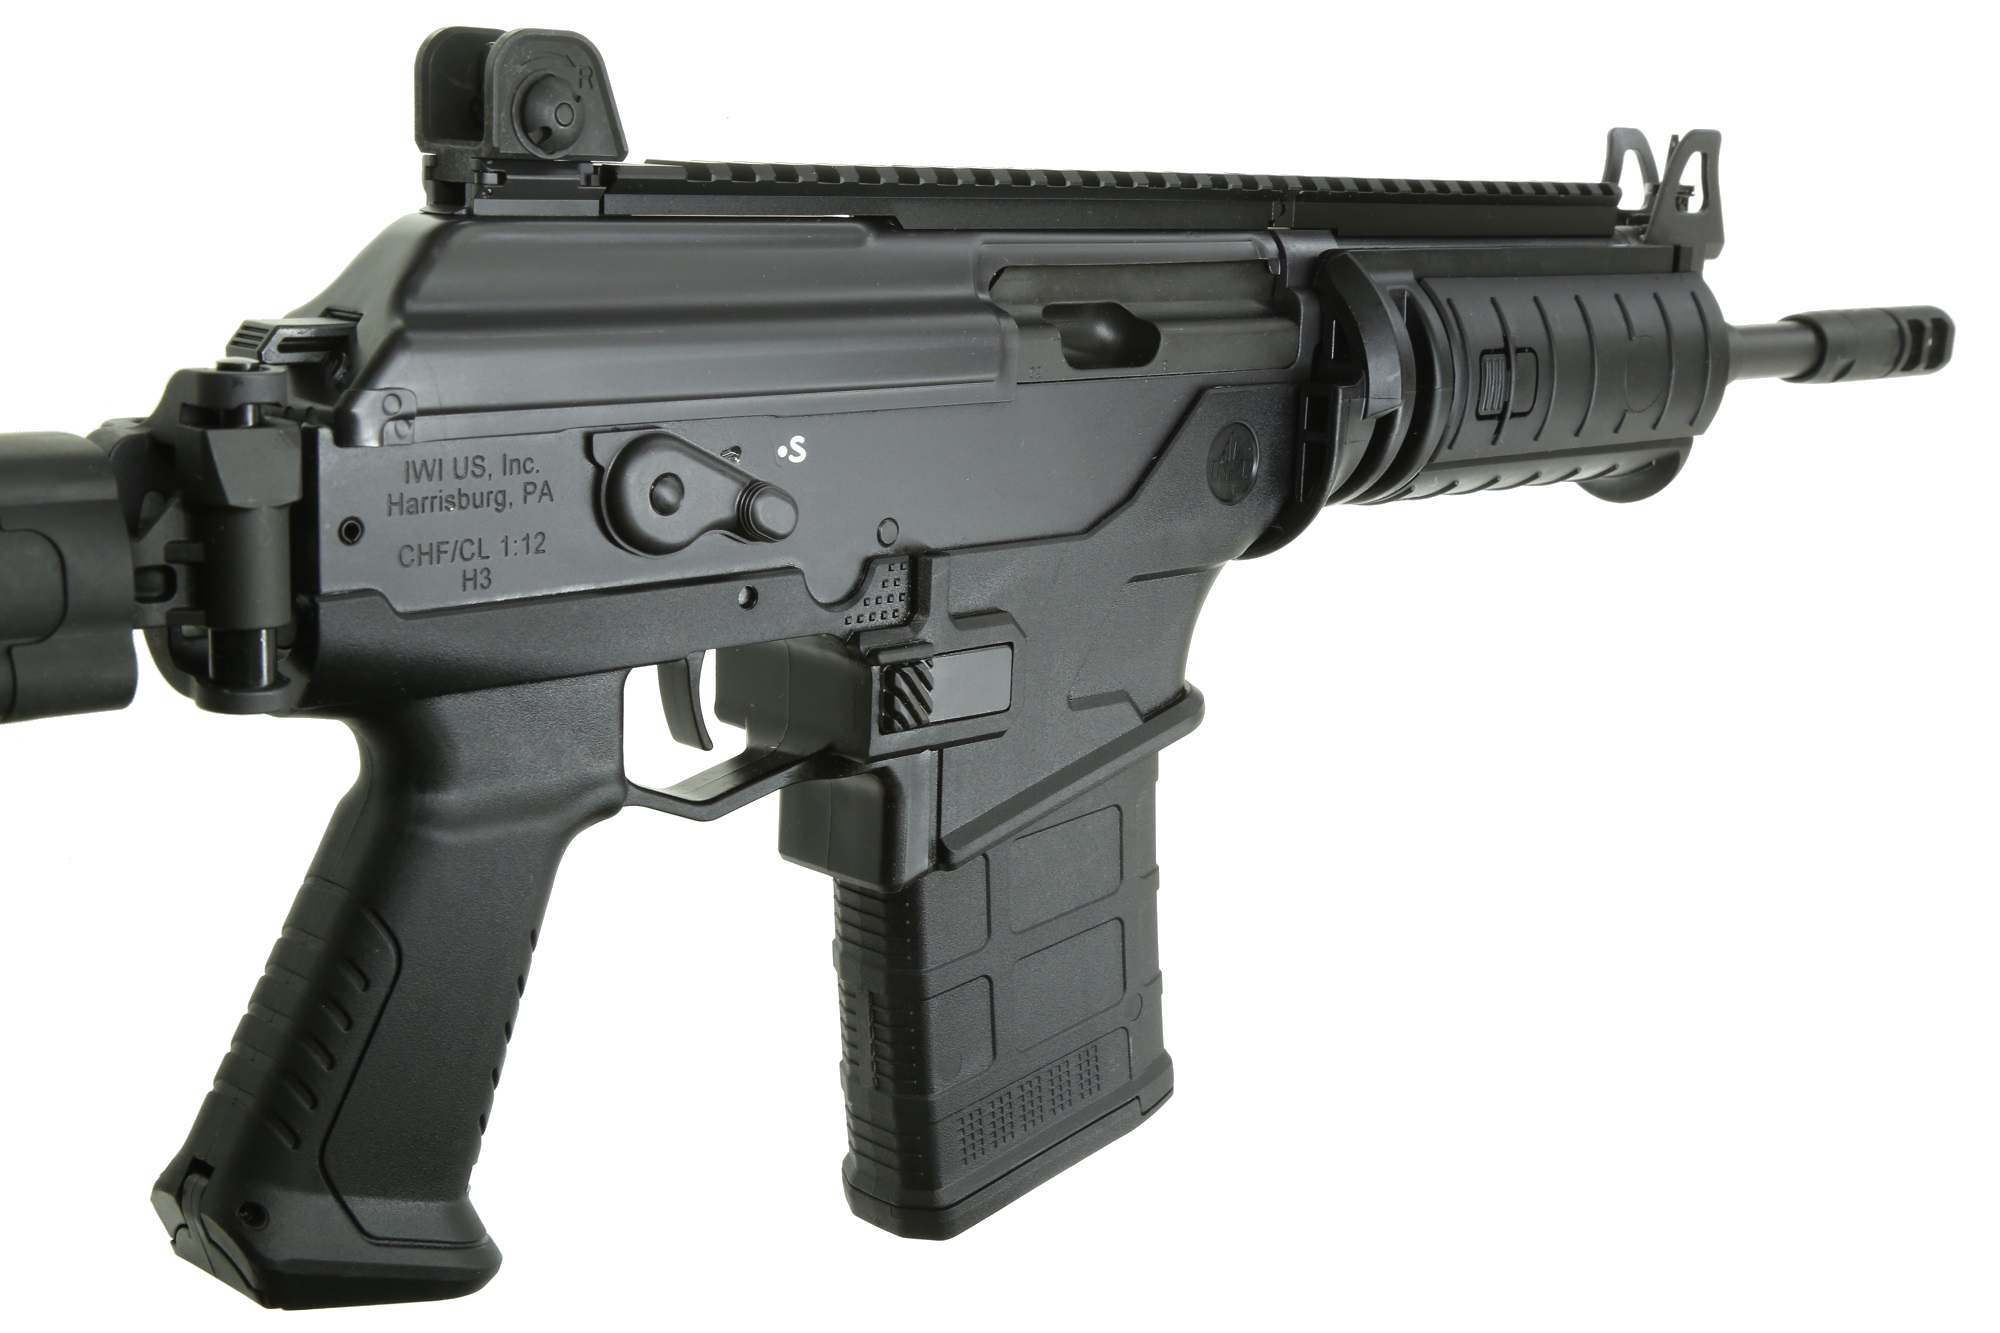 IWI Galil ACE - Galil ACE 7 62 NATO 11 8'' barrel Pistol w/ Side Folding  Stabilizing Brace GAP51SB